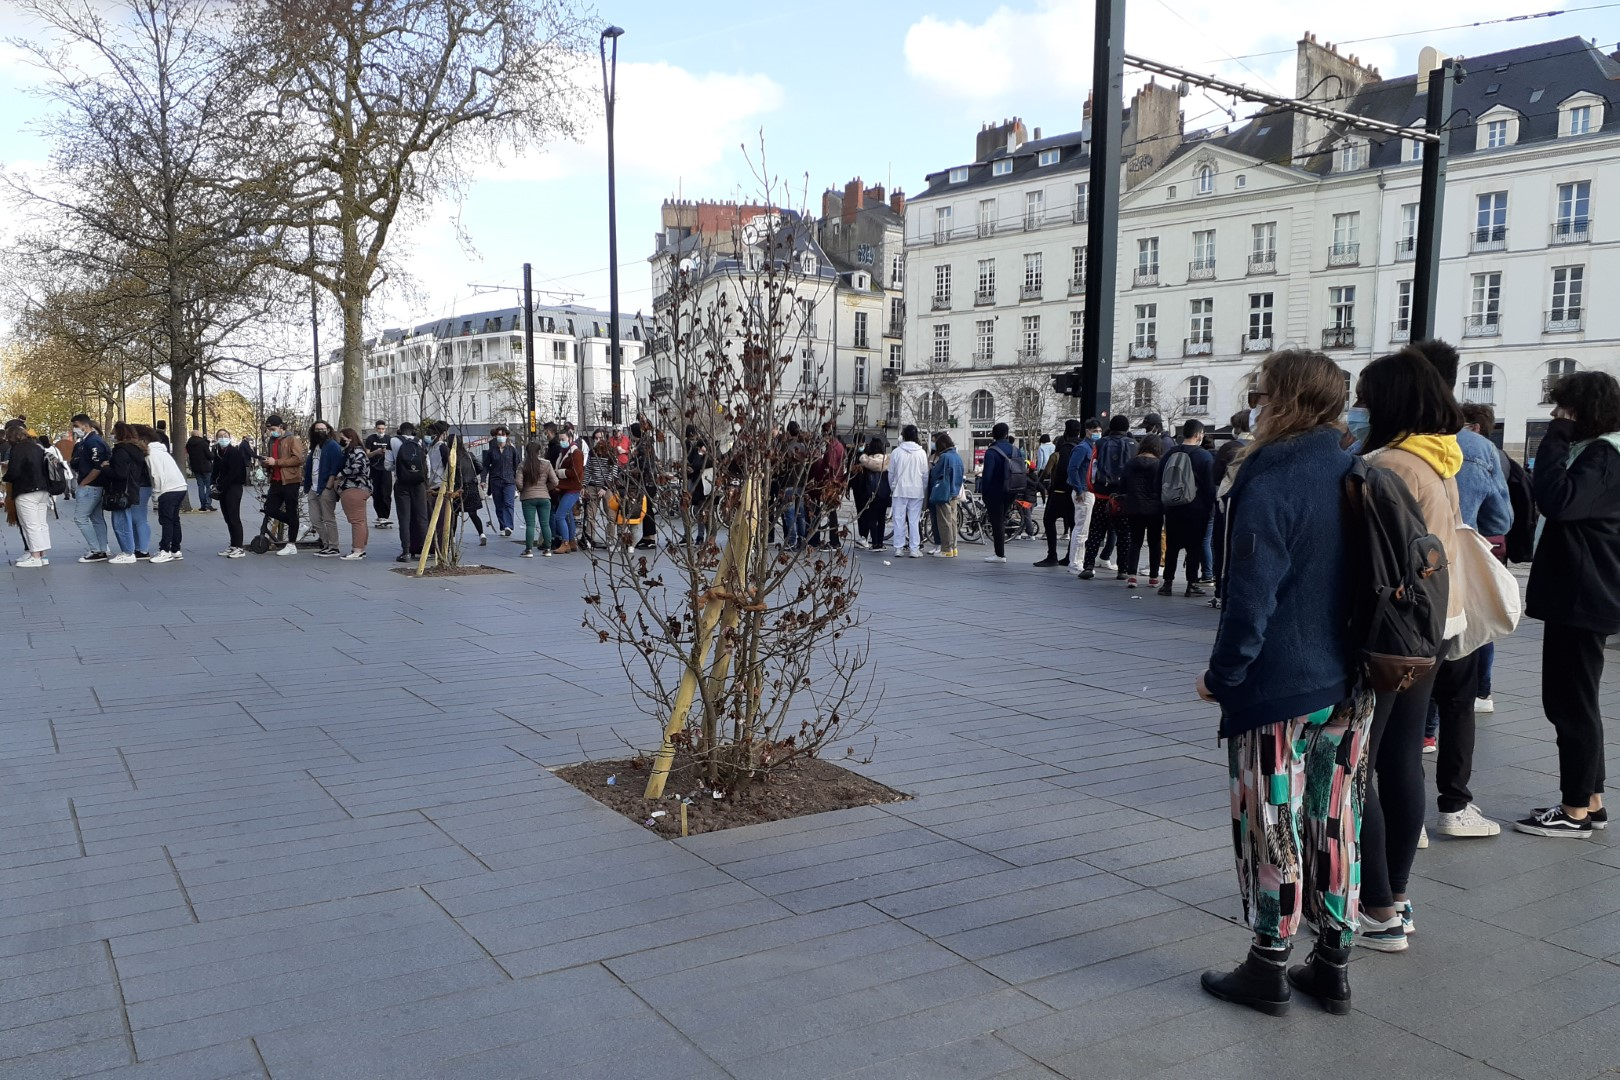 Lineup in front of a store in Nantes, March 2021